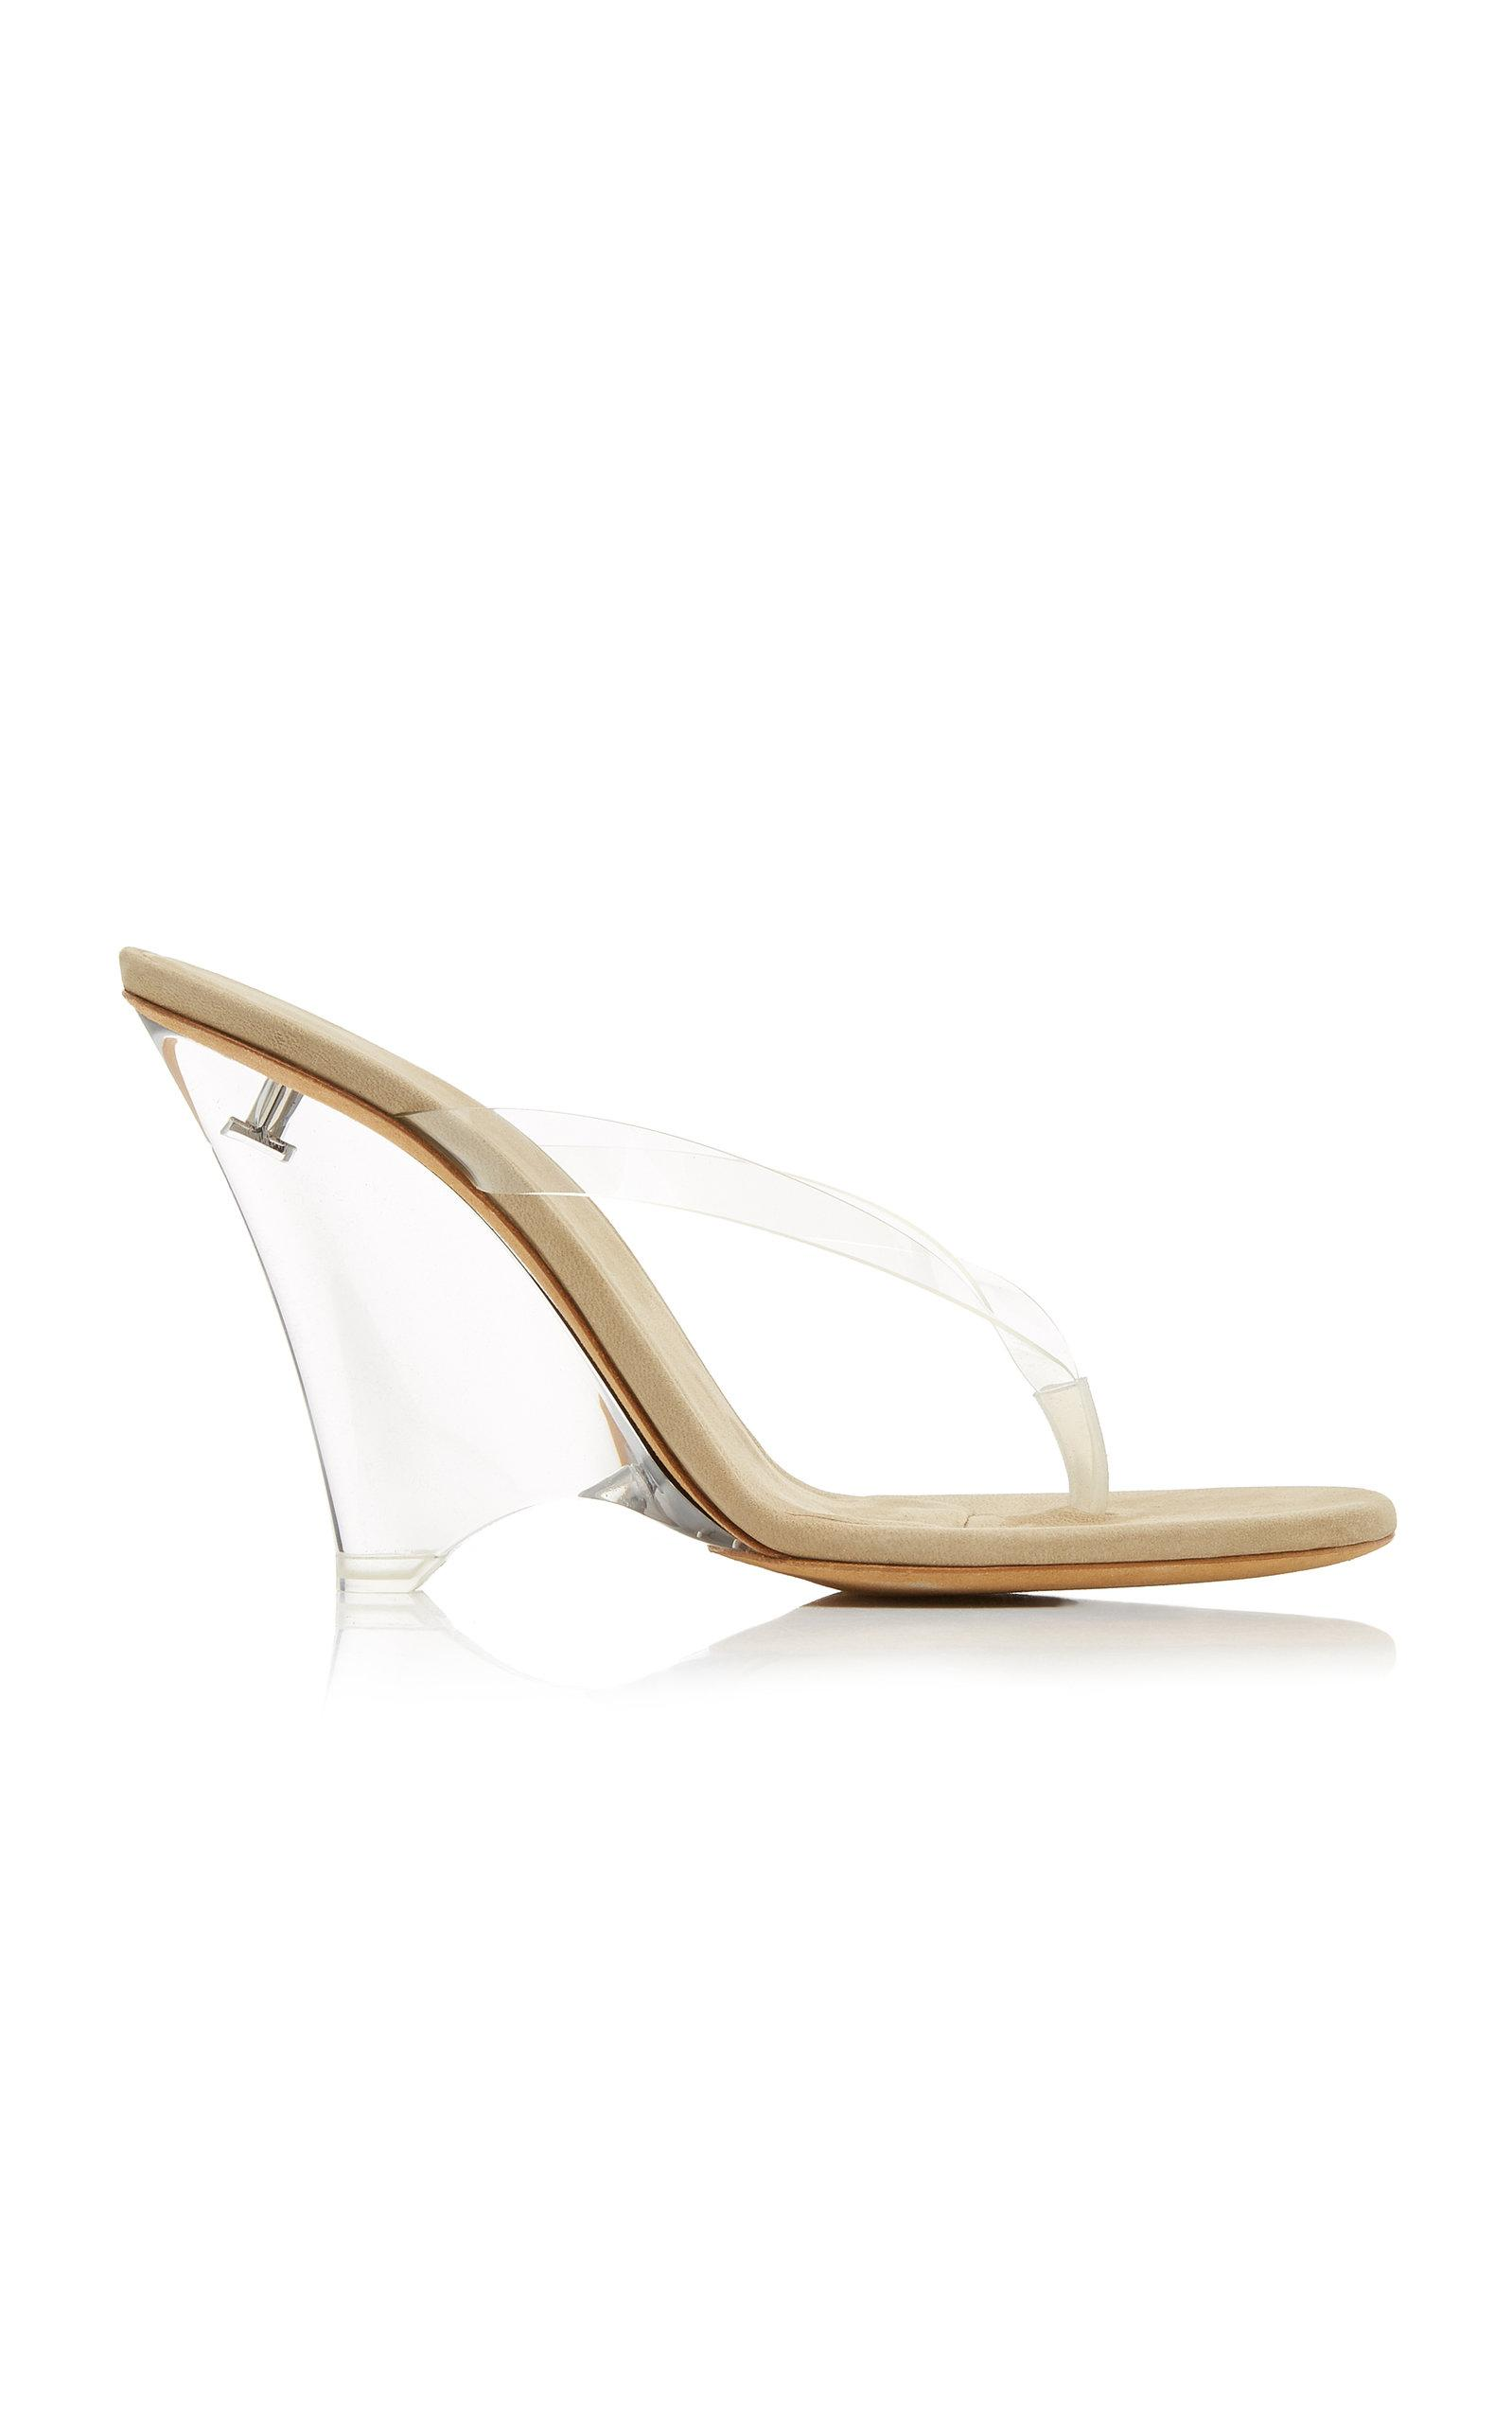 fd6301fc0 Lyst - Yeezy Pvc Wedge Sandals in White